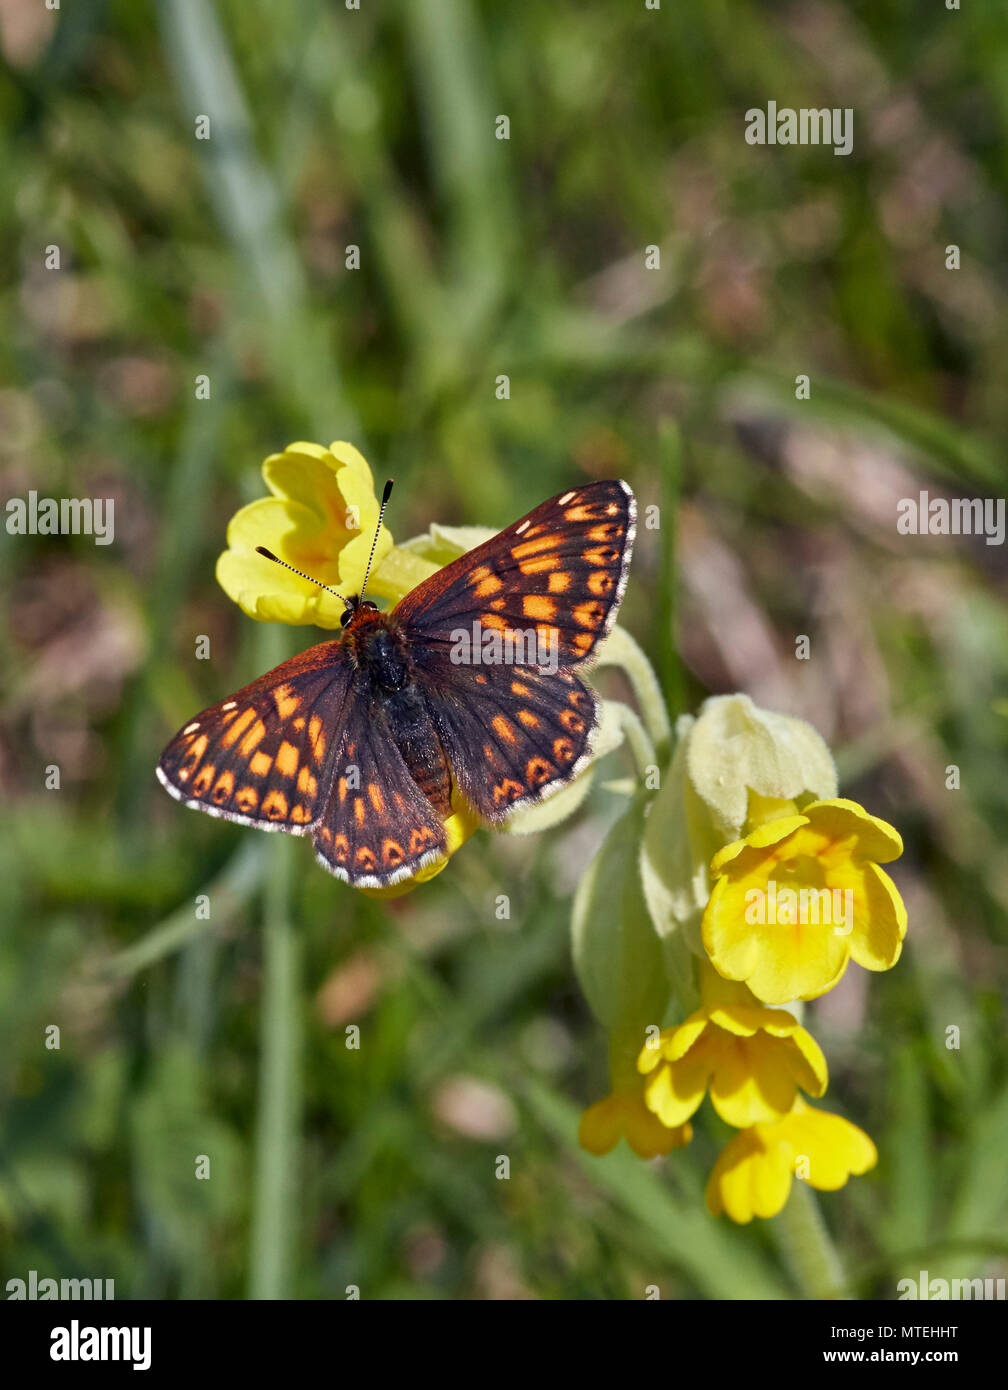 Duke of Burgundy butterfly on cowslip flowers. Noar Hill Nature Reserve, Selborne, Hampshire, England. Stock Photo